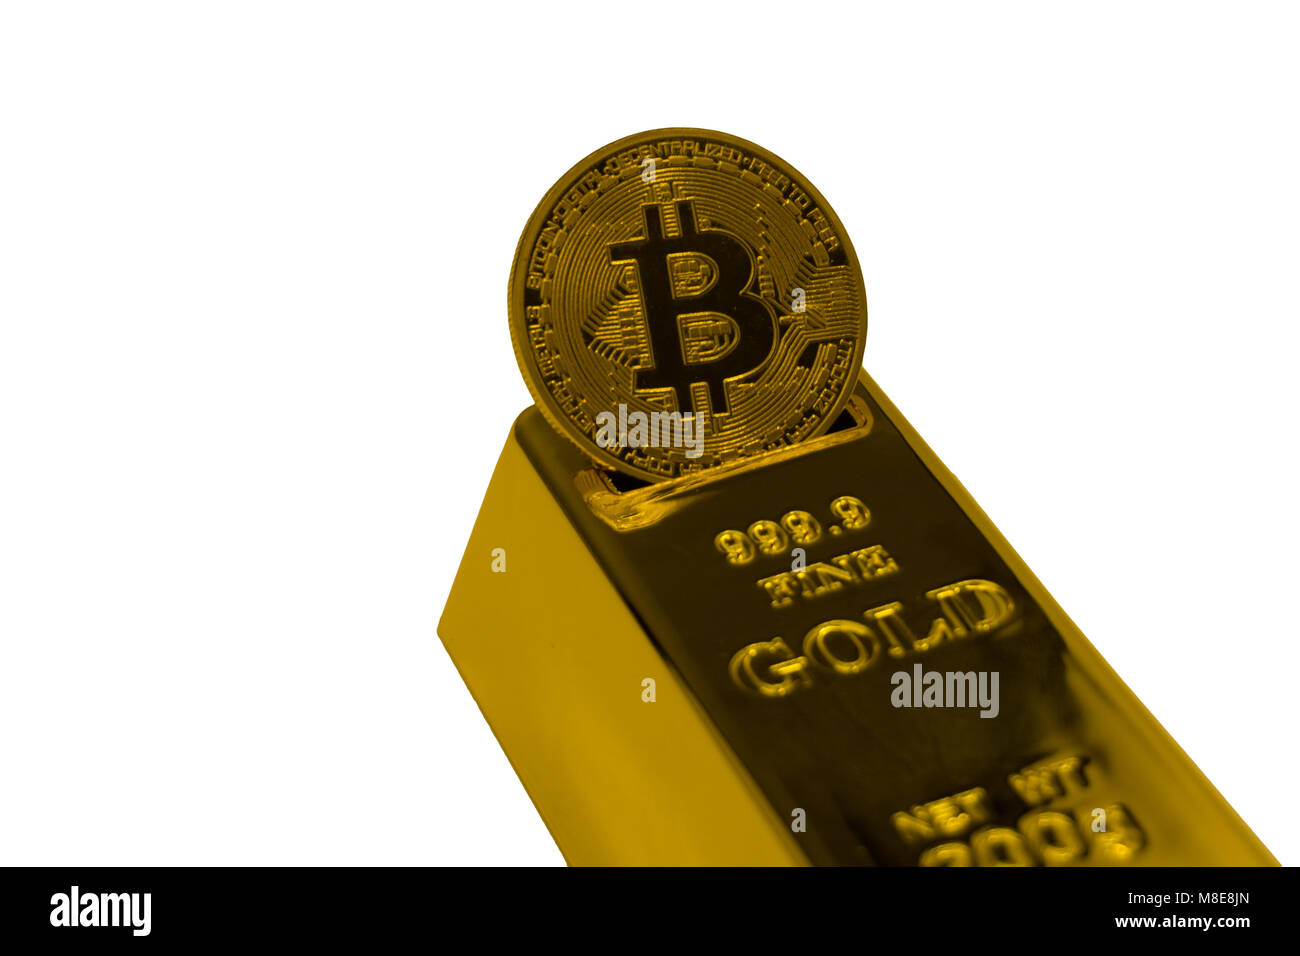 Gold Stock Price Stock Photos Gold Stock Price Stock Images Alamy